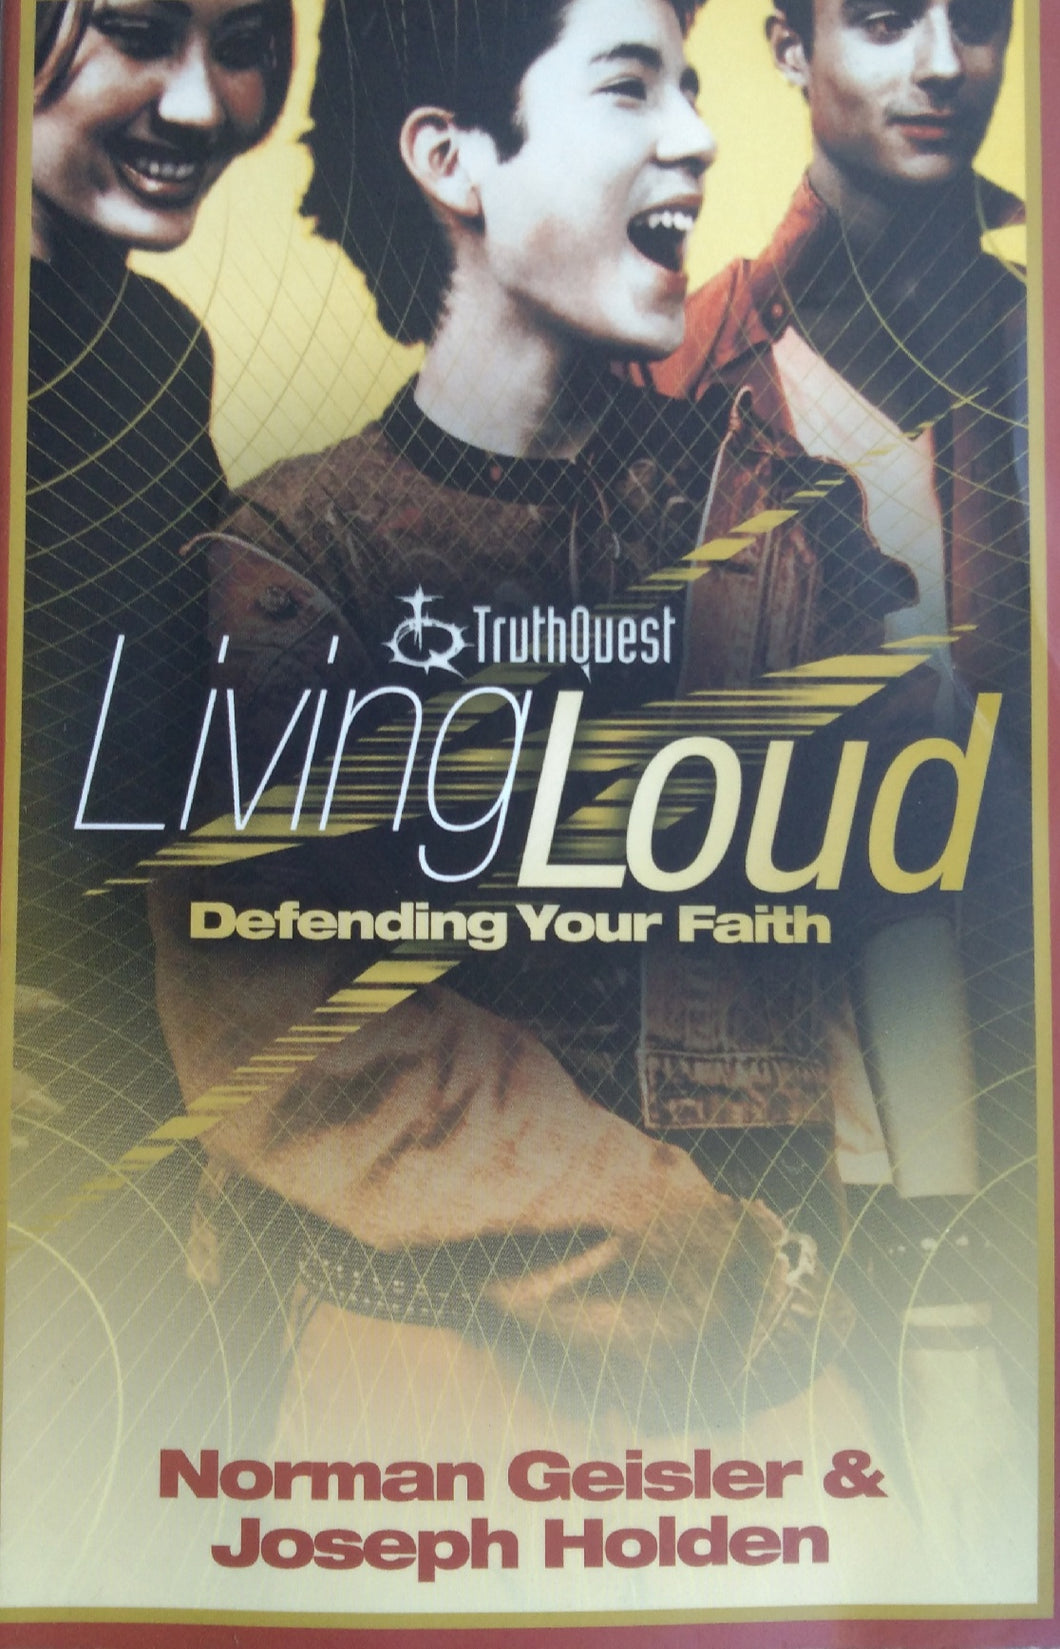 Living Loud Depending Your Faith by Norman Geisler